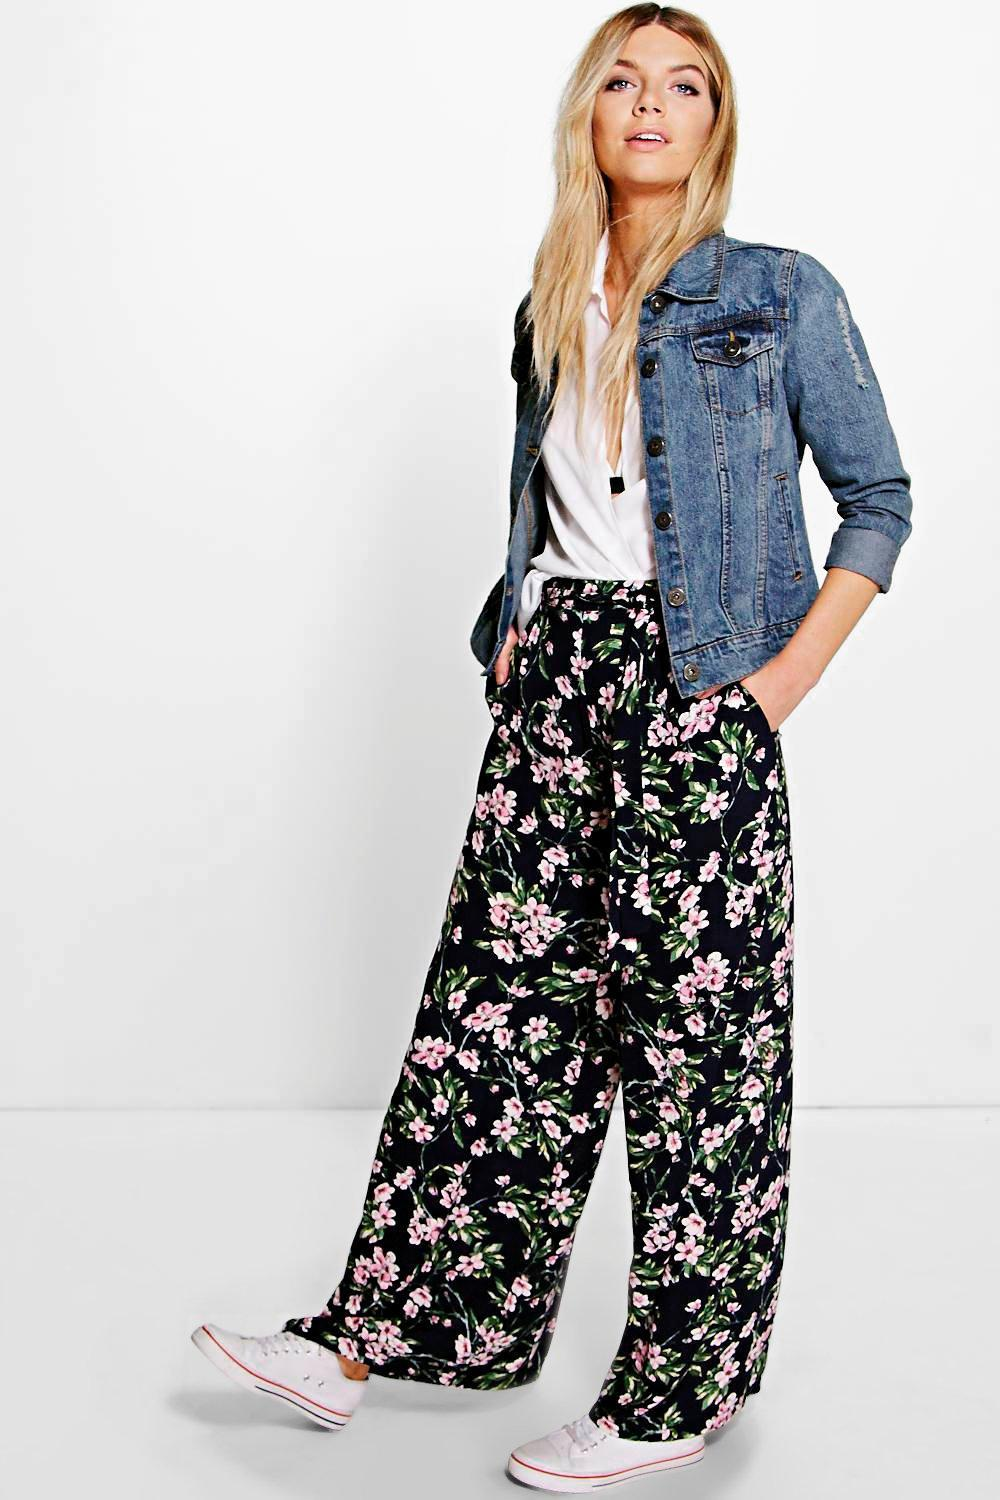 Belted Floral Wide Leg Trousers Multi - length: standard; style: palazzo; waist: mid/regular rise; secondary colour: blush; predominant colour: black; occasions: casual; fibres: polyester/polyamide - 100%; fit: wide leg; pattern type: fabric; pattern: florals; texture group: other - light to midweight; multicoloured: multicoloured; season: s/s 2016; wardrobe: highlight